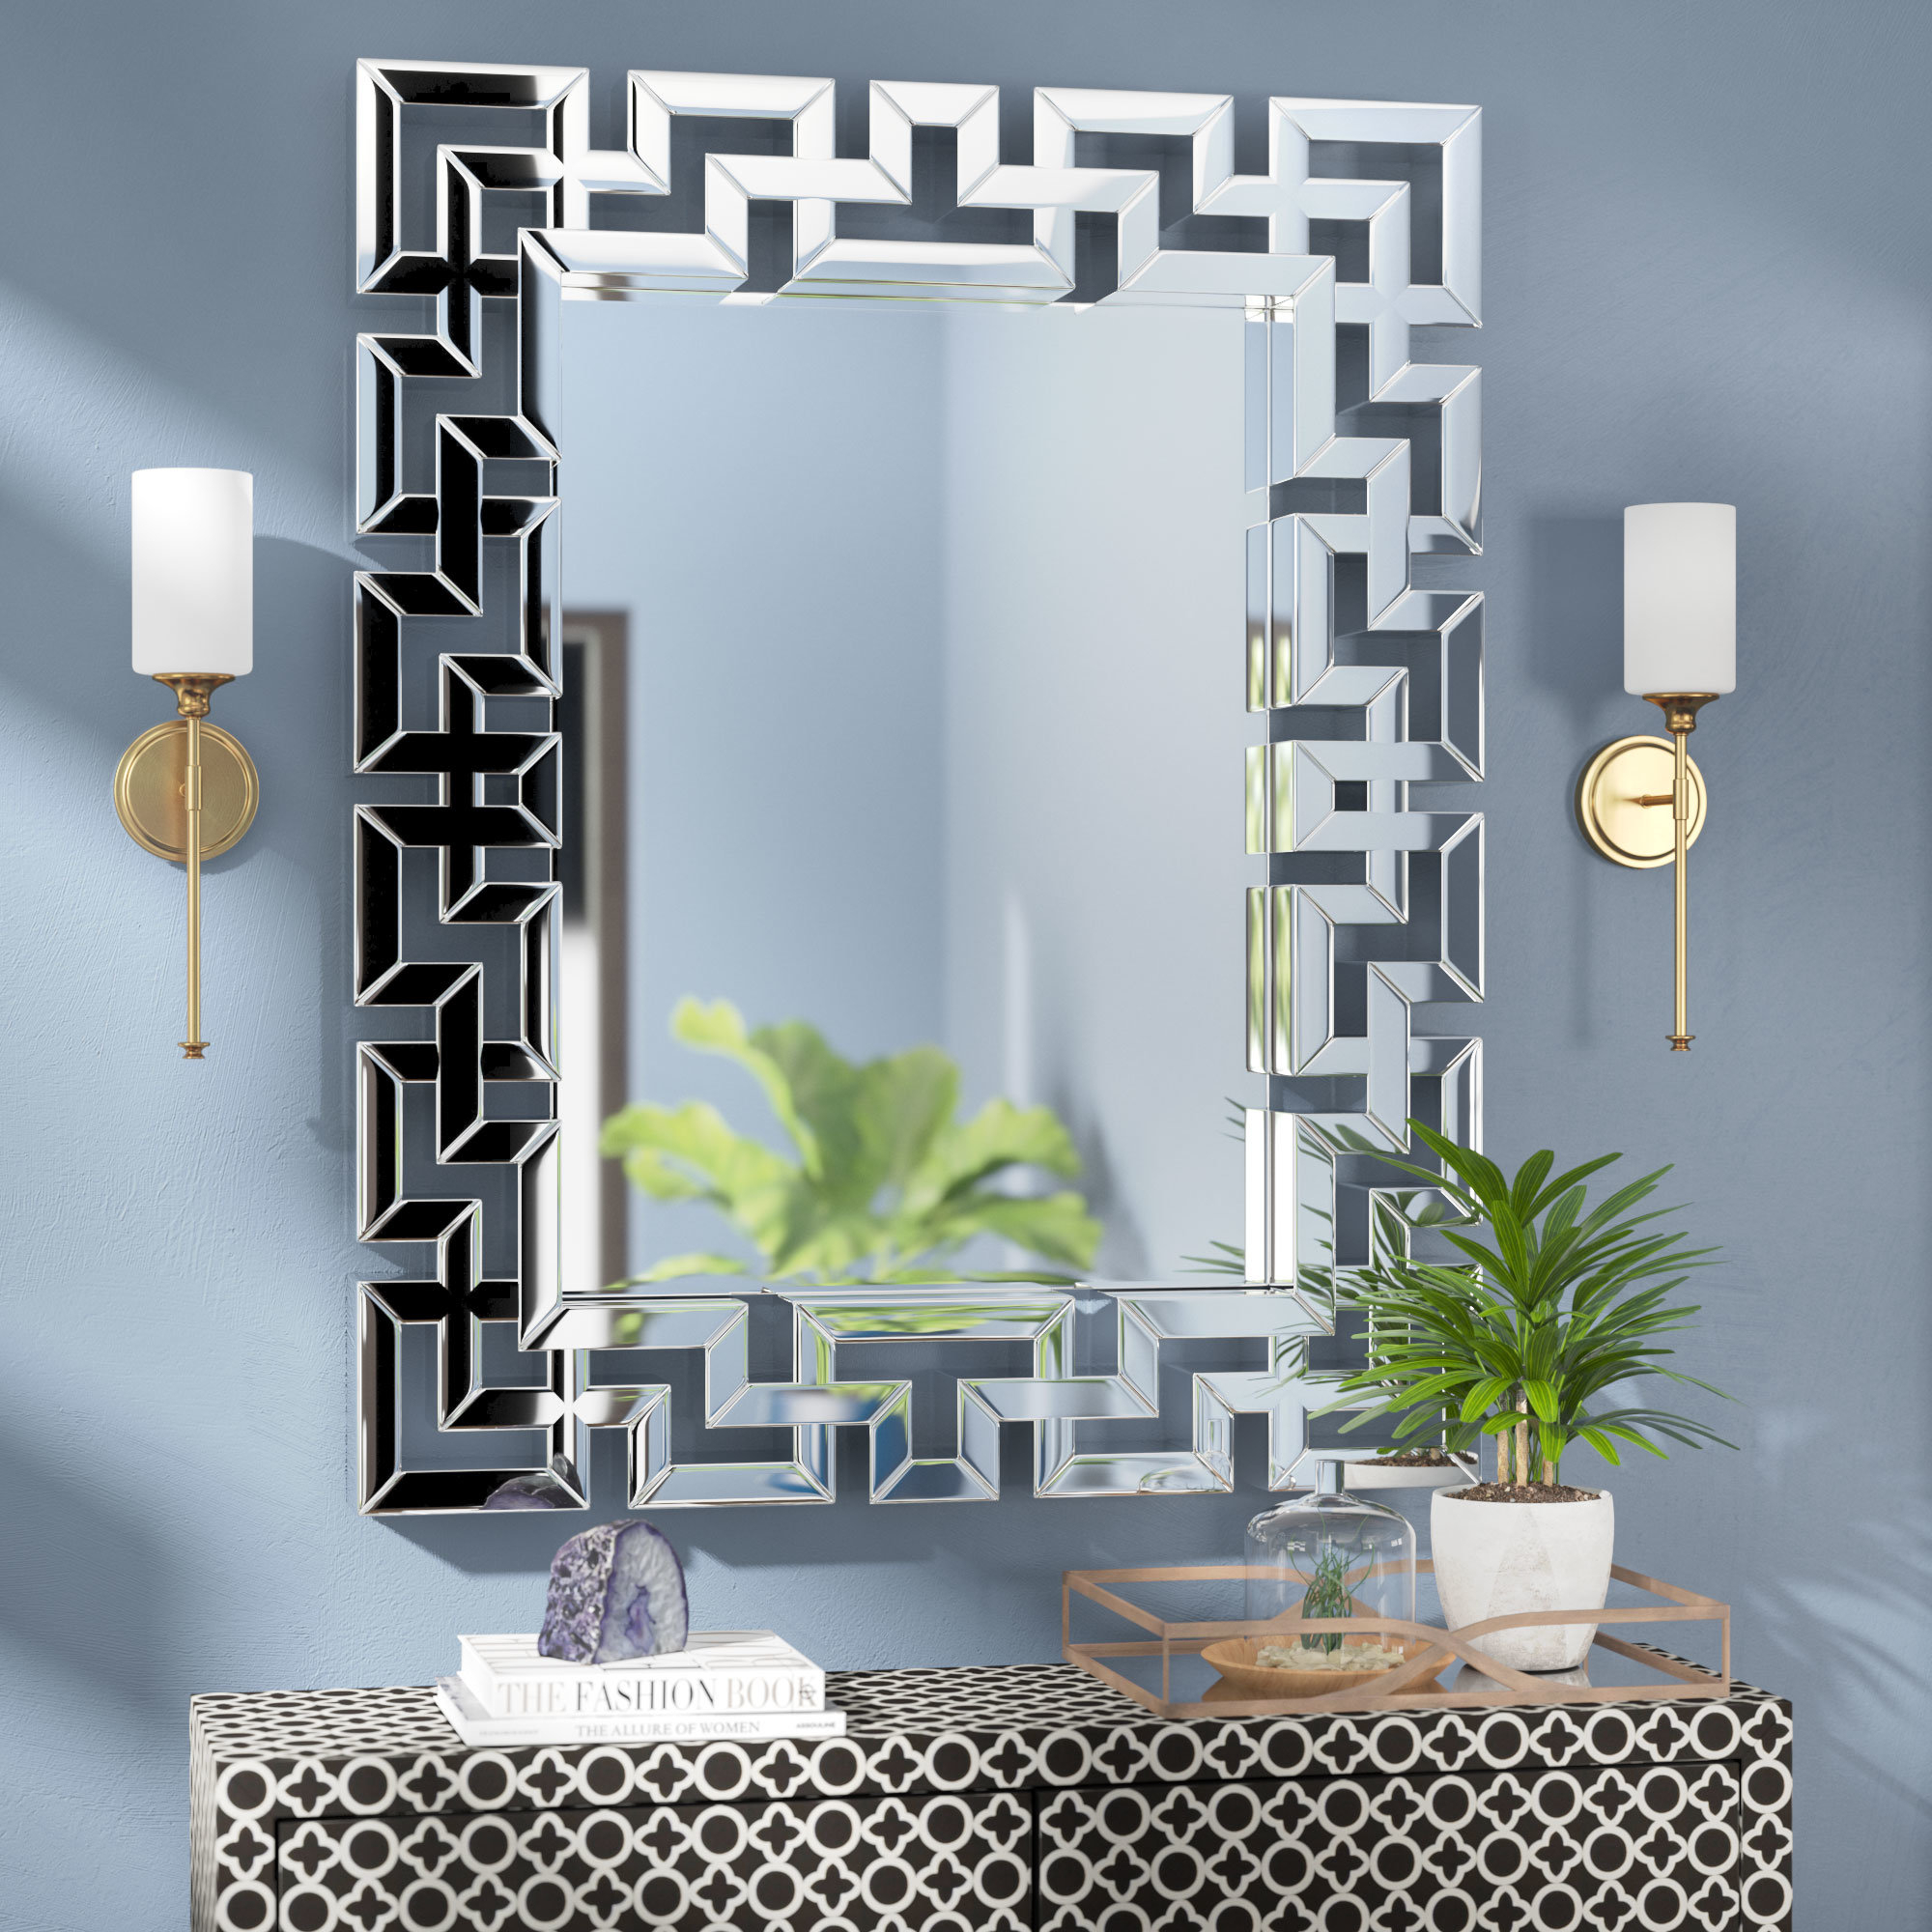 Dining Room Wall Mirror | Wayfair Pertaining To Marion Wall Mirrors (Gallery 24 of 30)